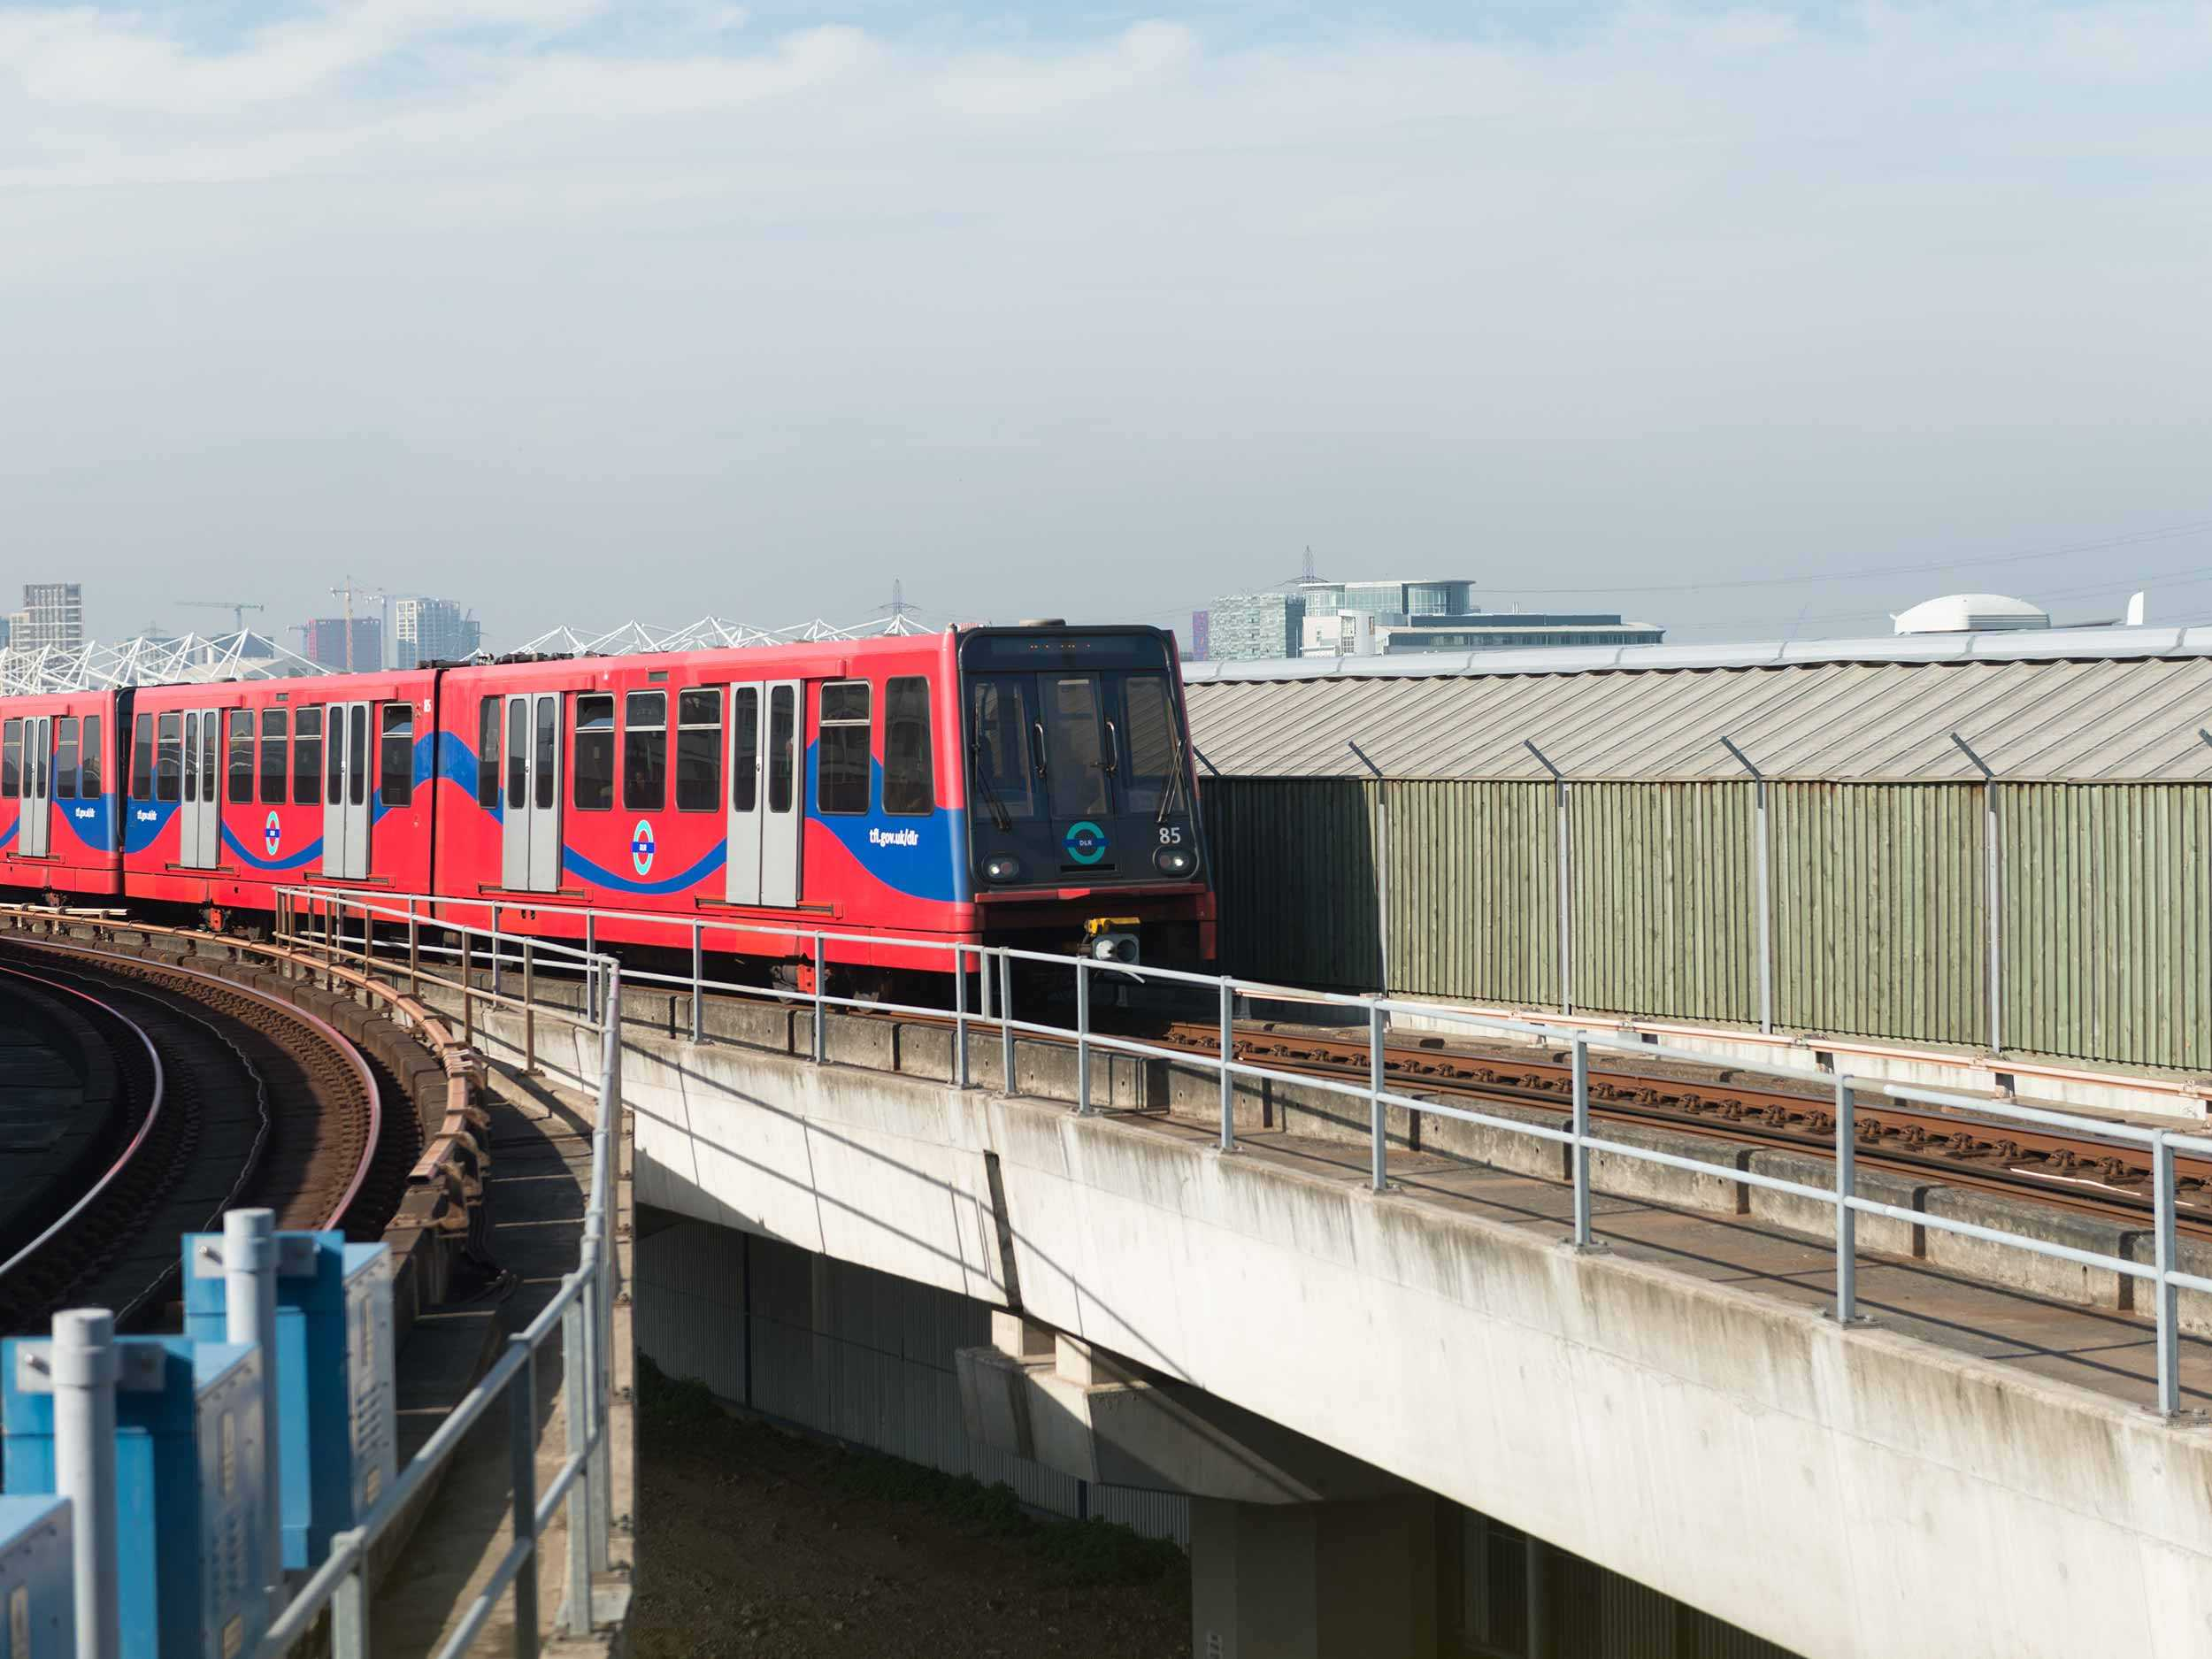 DLR train approaching along a track